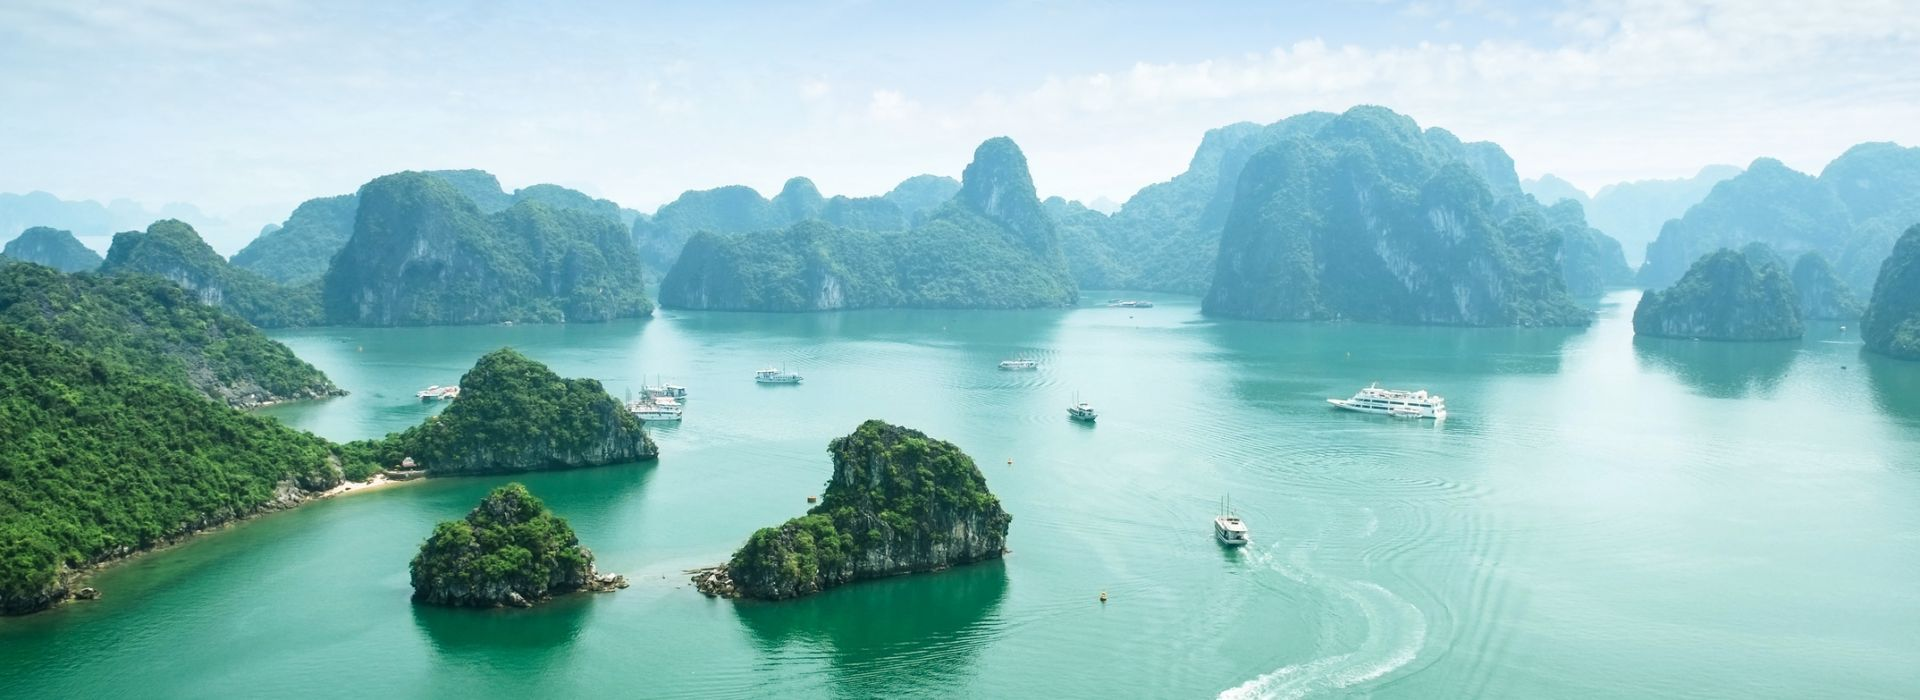 Getaways and short breaks Tours in Ho Chi Minh City